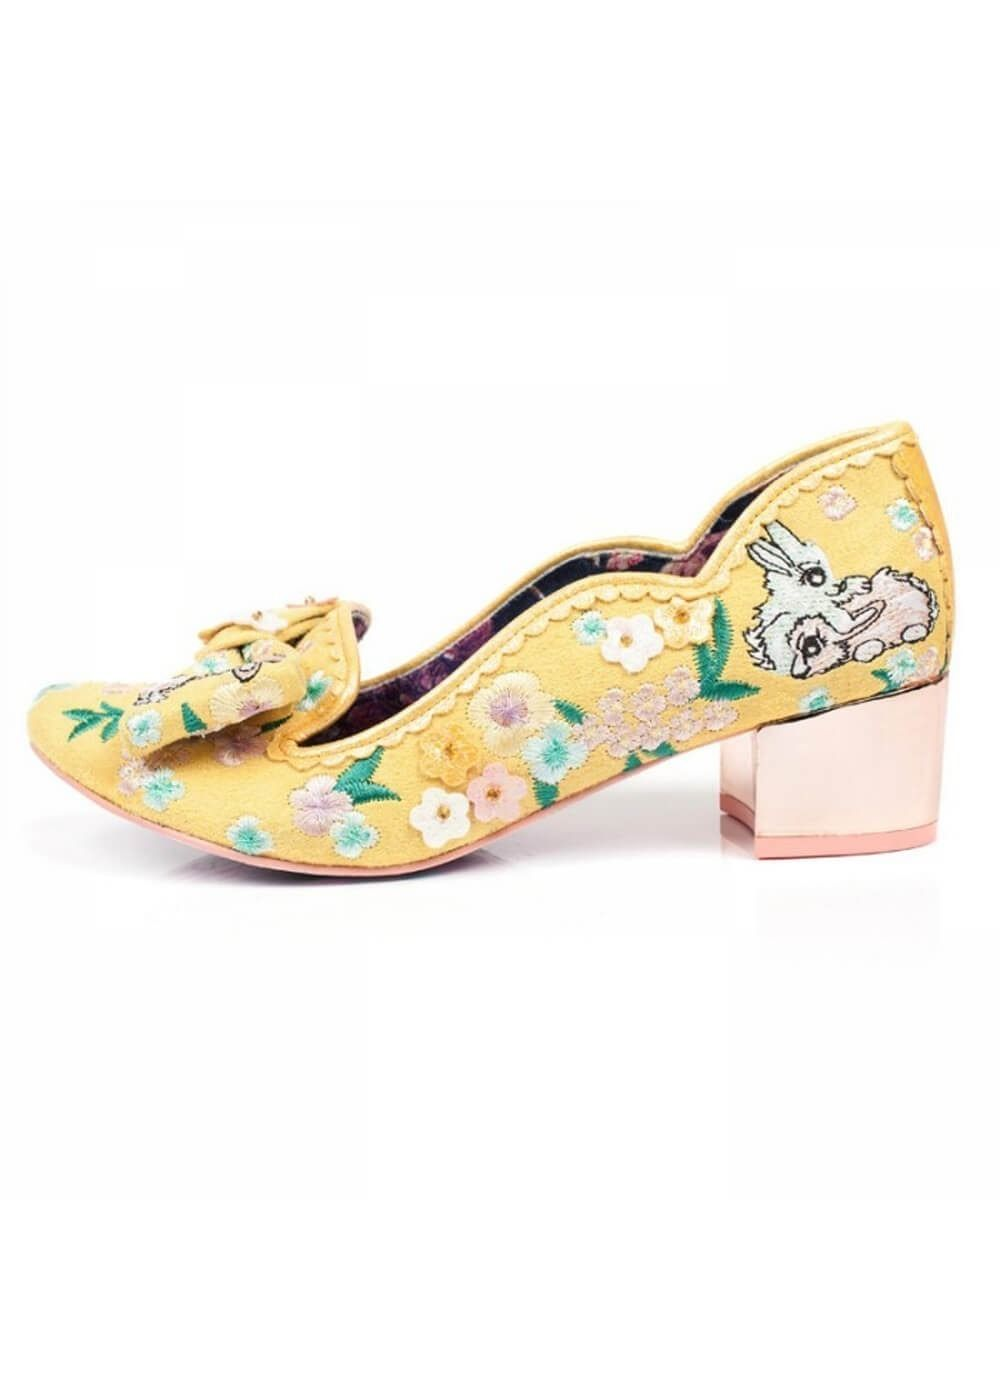 08956ac18852 Image result for yellow bunny hop irregular choice